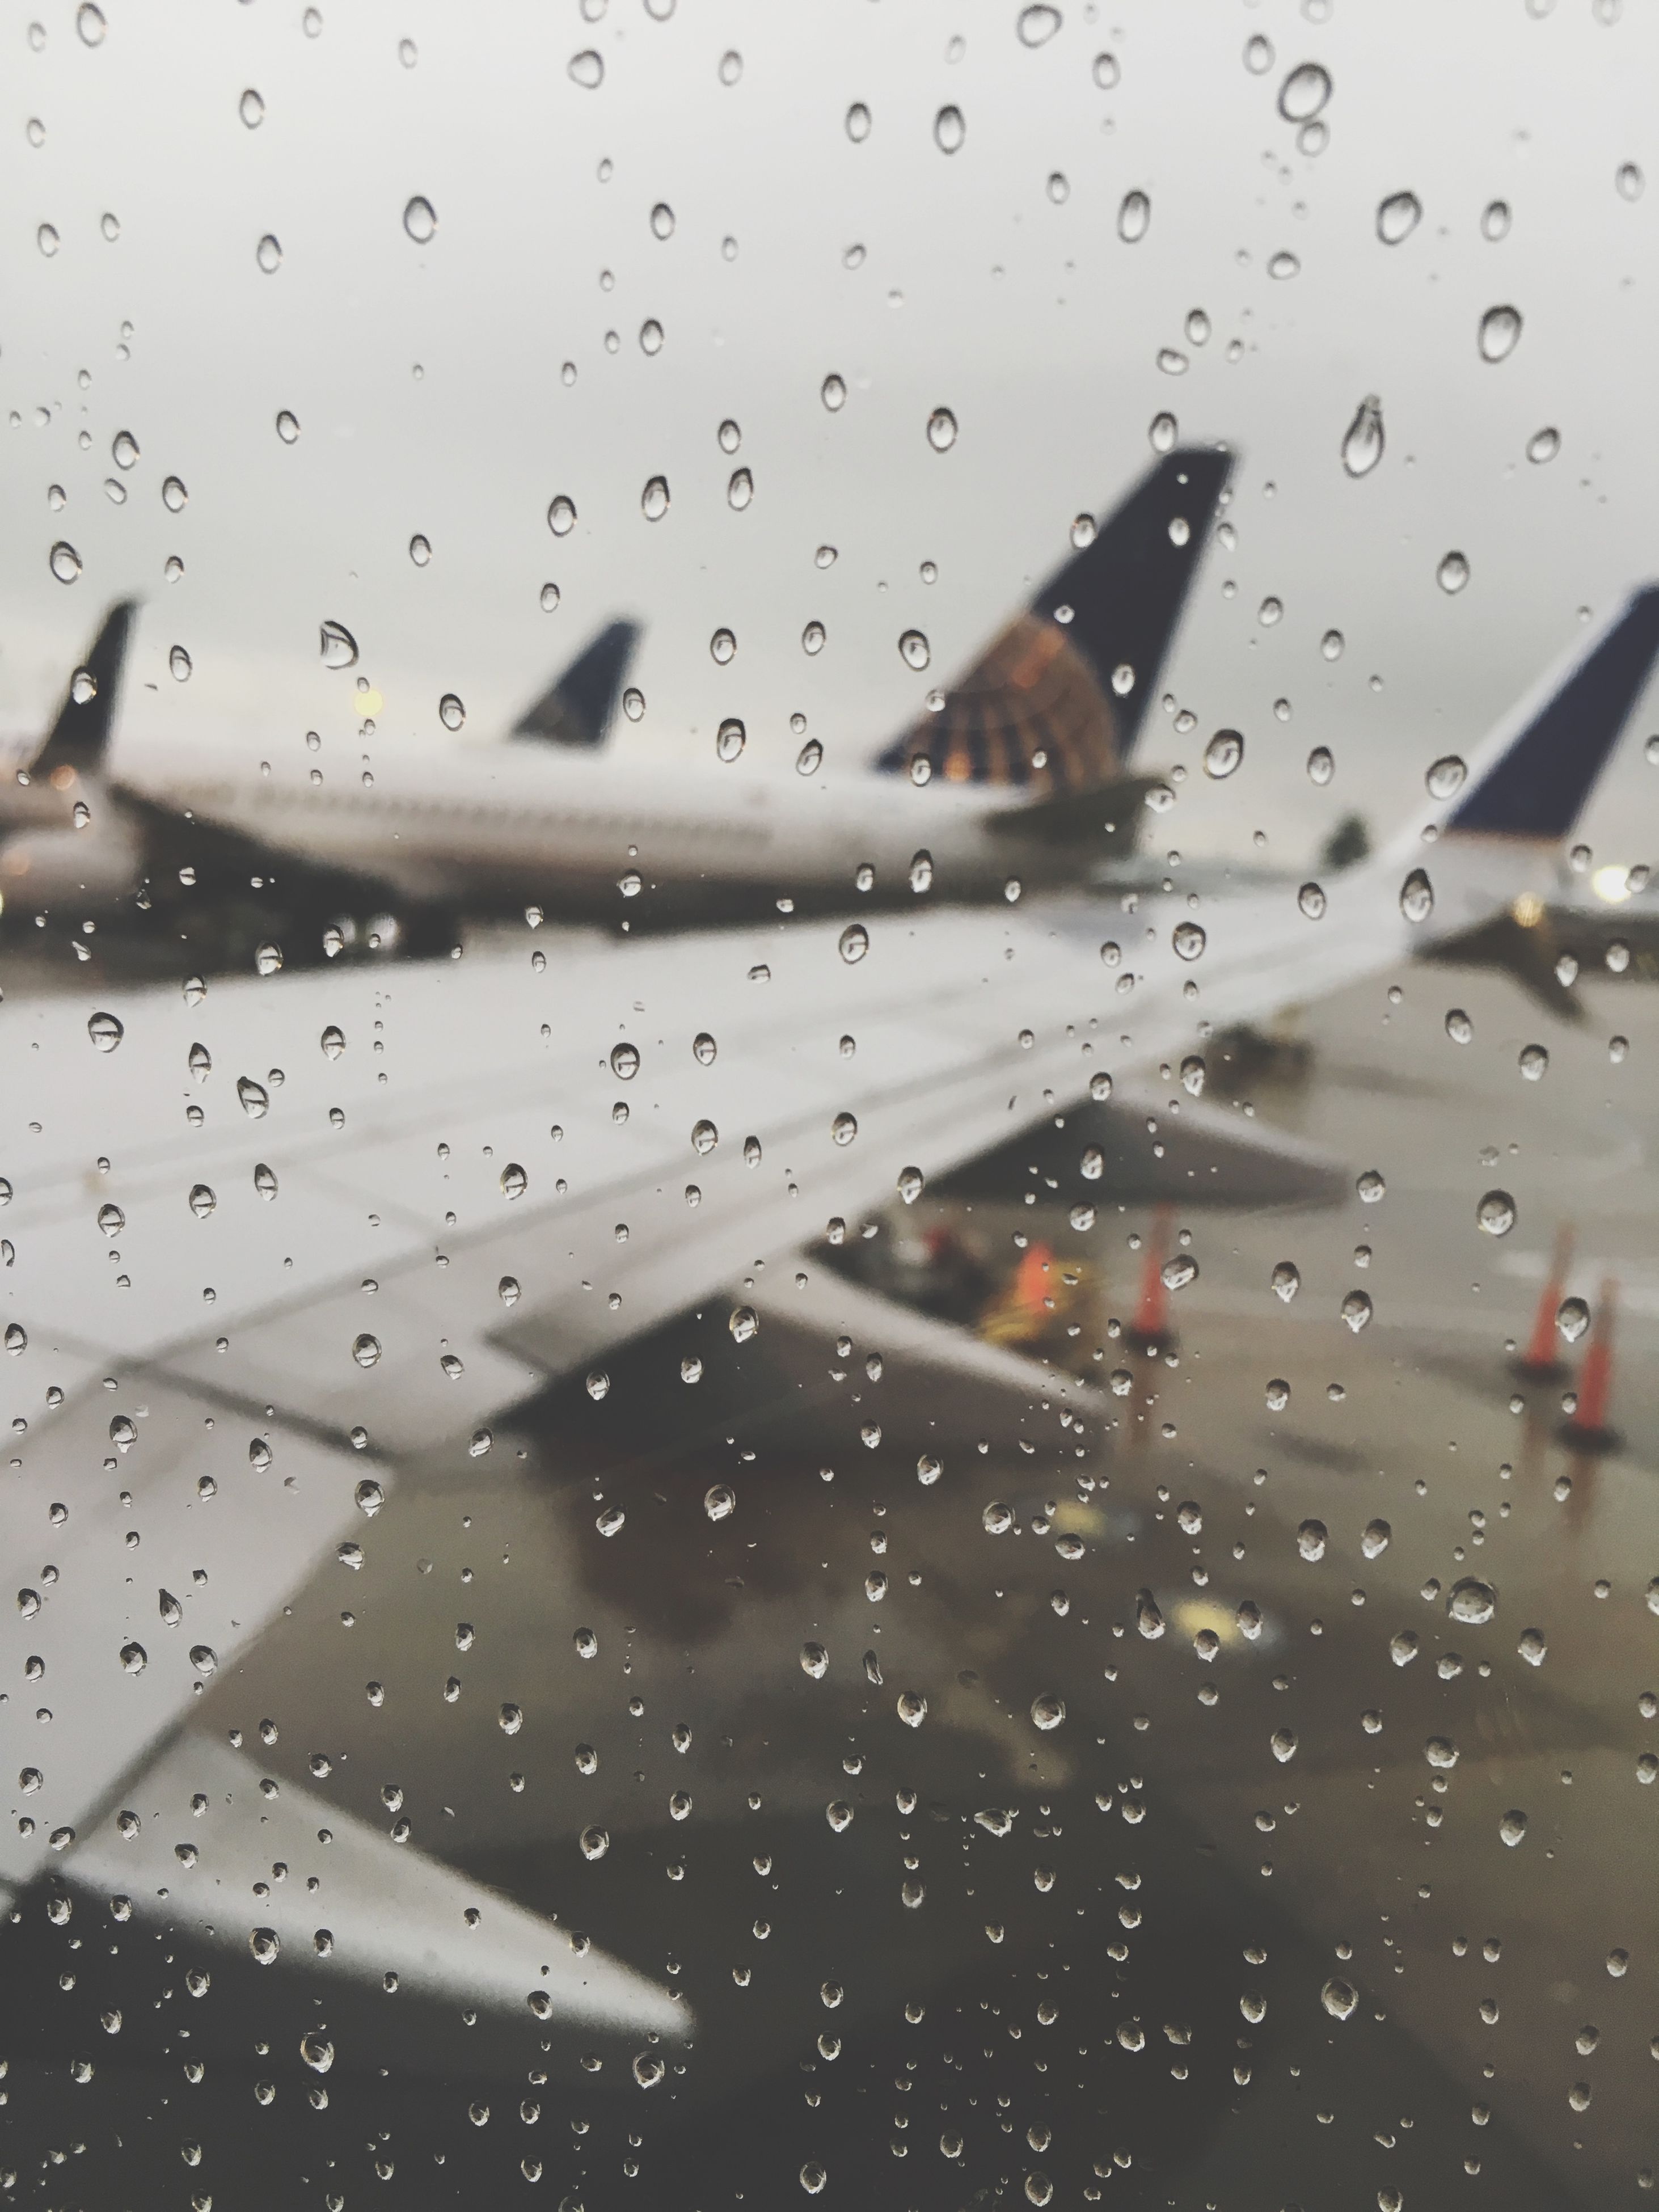 drop, transportation, window, mode of transport, indoors, wet, transparent, glass - material, airplane, rain, vehicle interior, car, air vehicle, backgrounds, raindrop, weather, full frame, windshield, travel, water